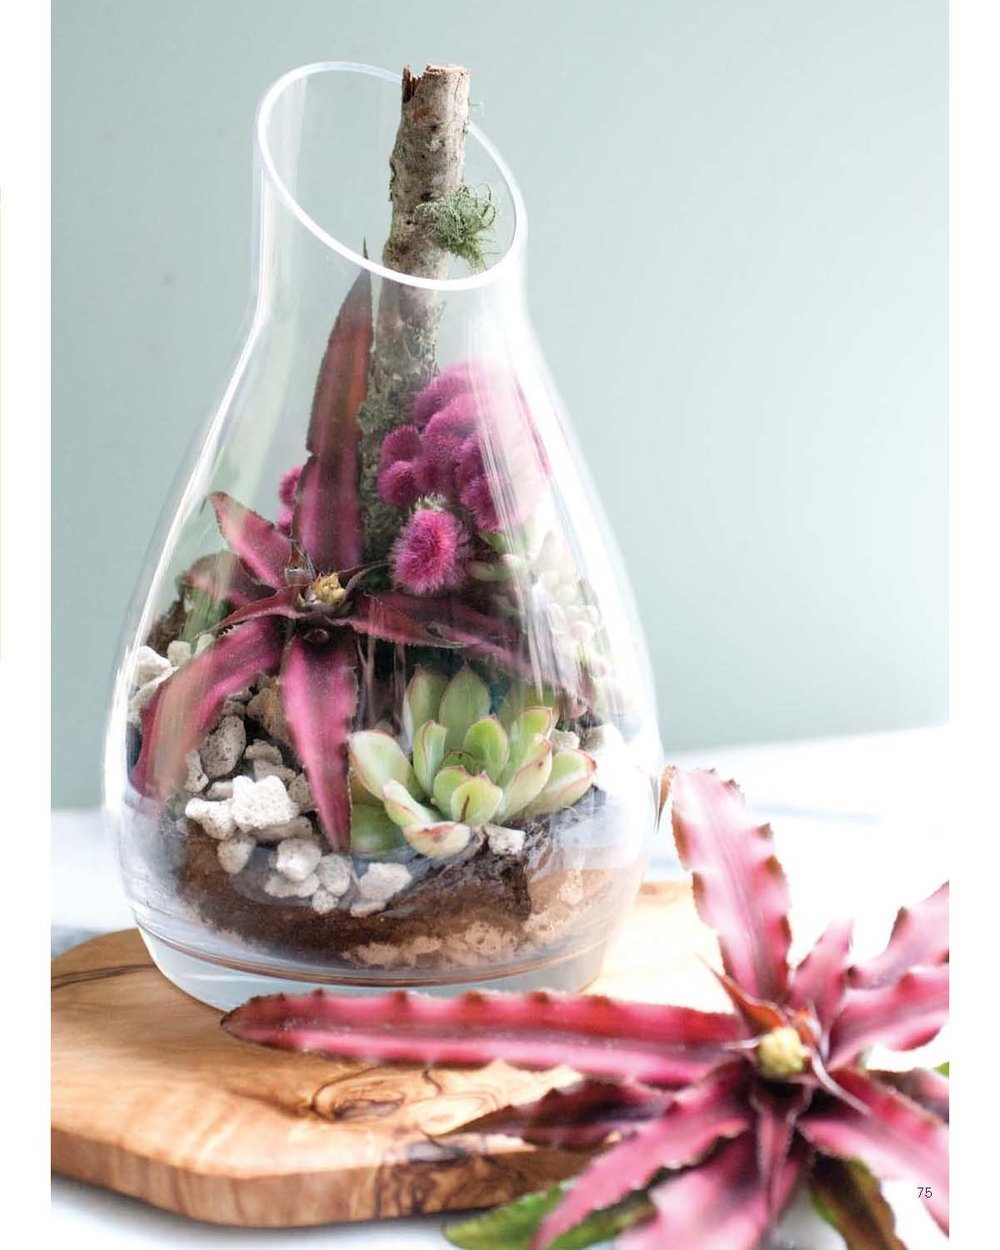 Modern Terrarium Studio - The Star in the Jar beauty image